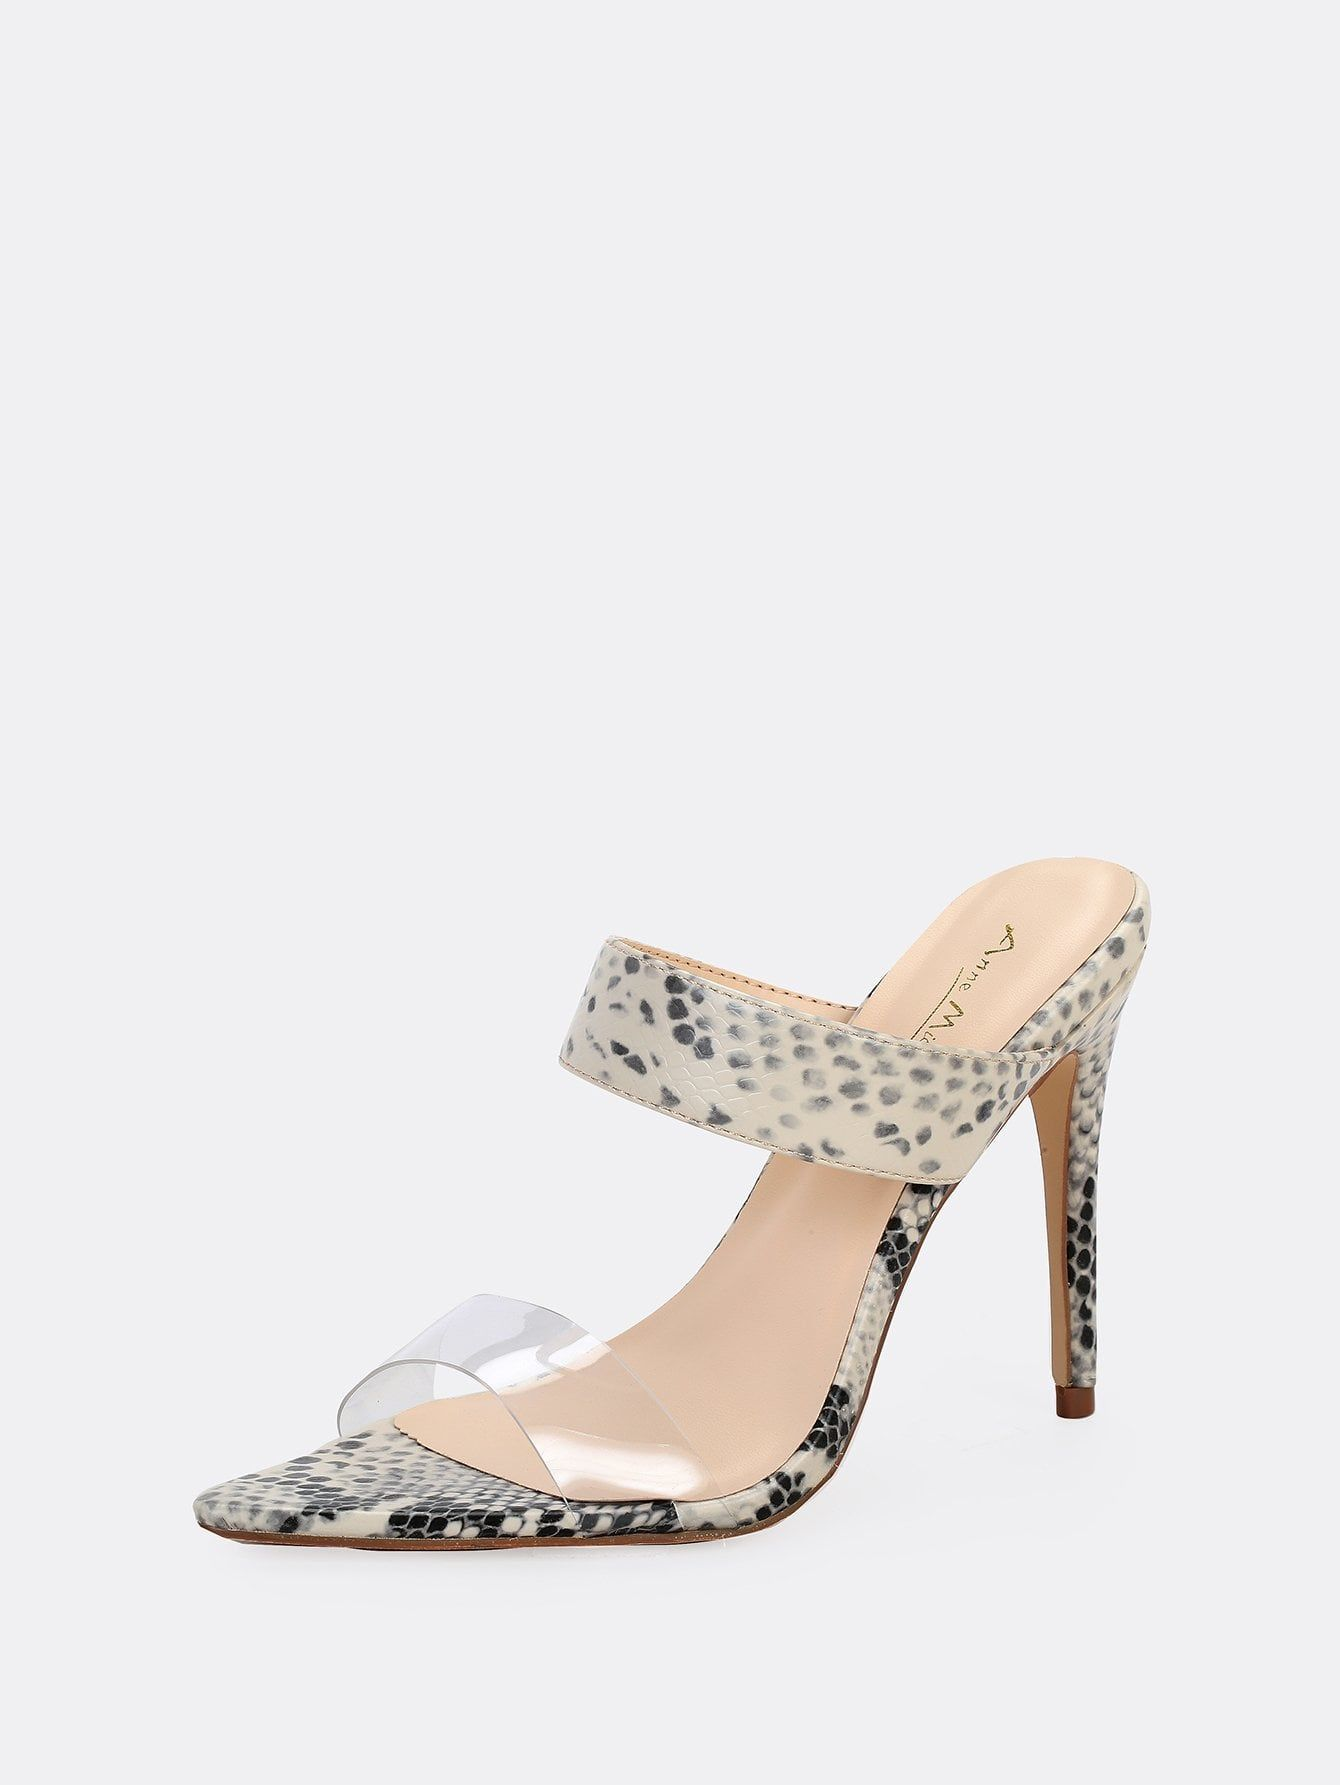 e31bc6cf4cc Party Open Toe Snakeskin Print Black and White High Heel Stiletto Open Pointy  Toe Clear Band Stiletto Mule Heels